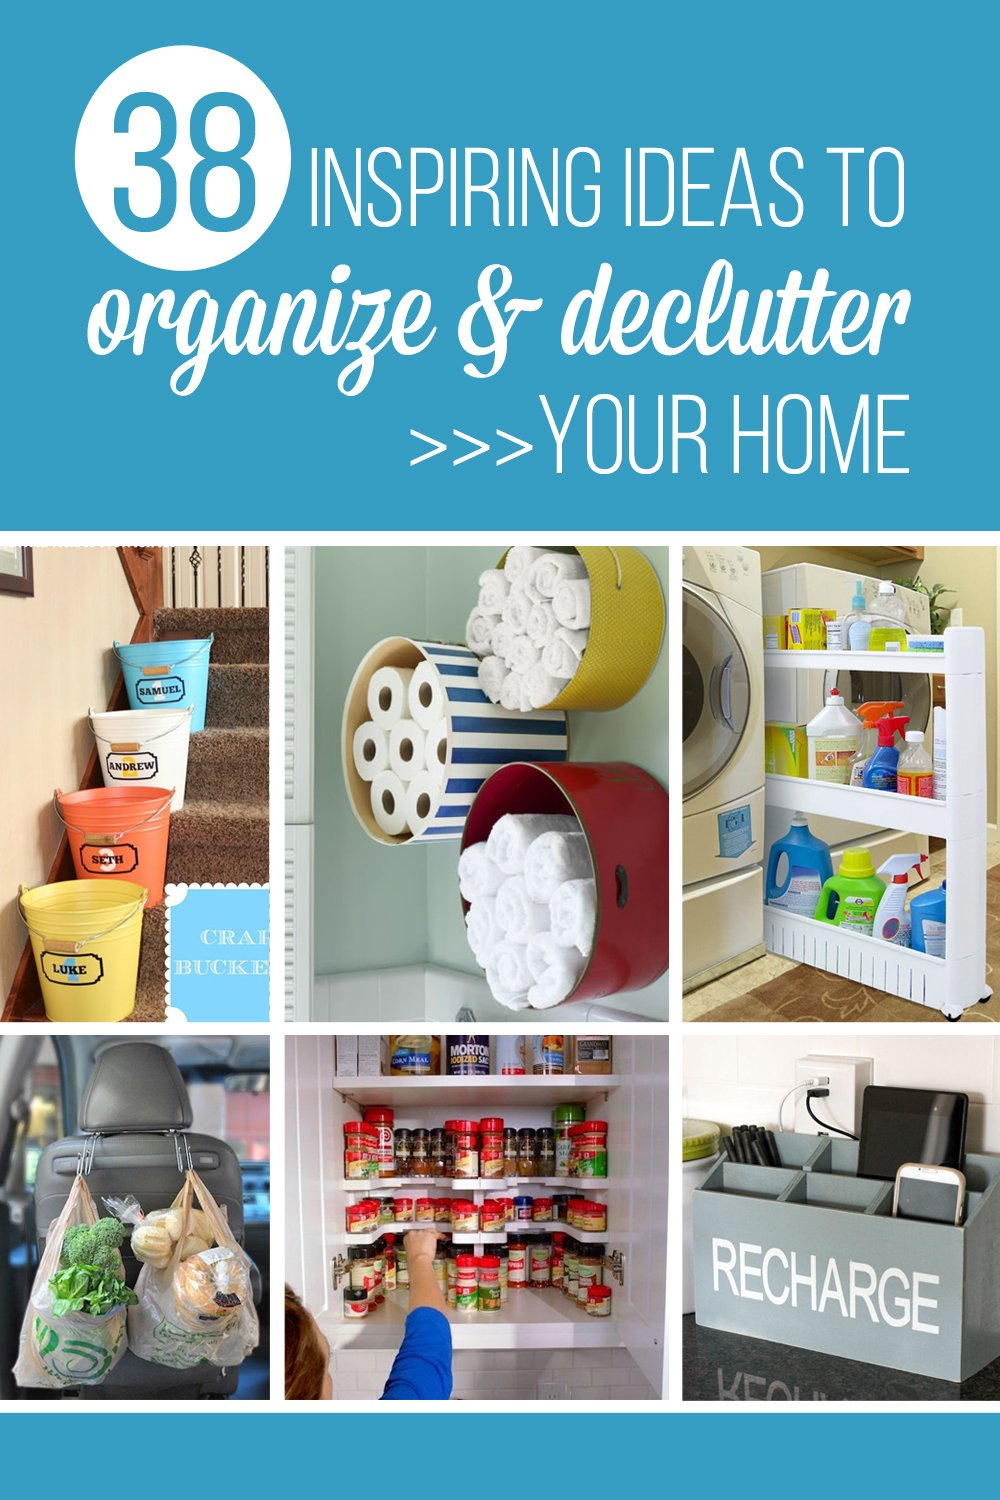 20 Inspiring Ideas to Organize and Declutter Your Home | via Make It and Love It